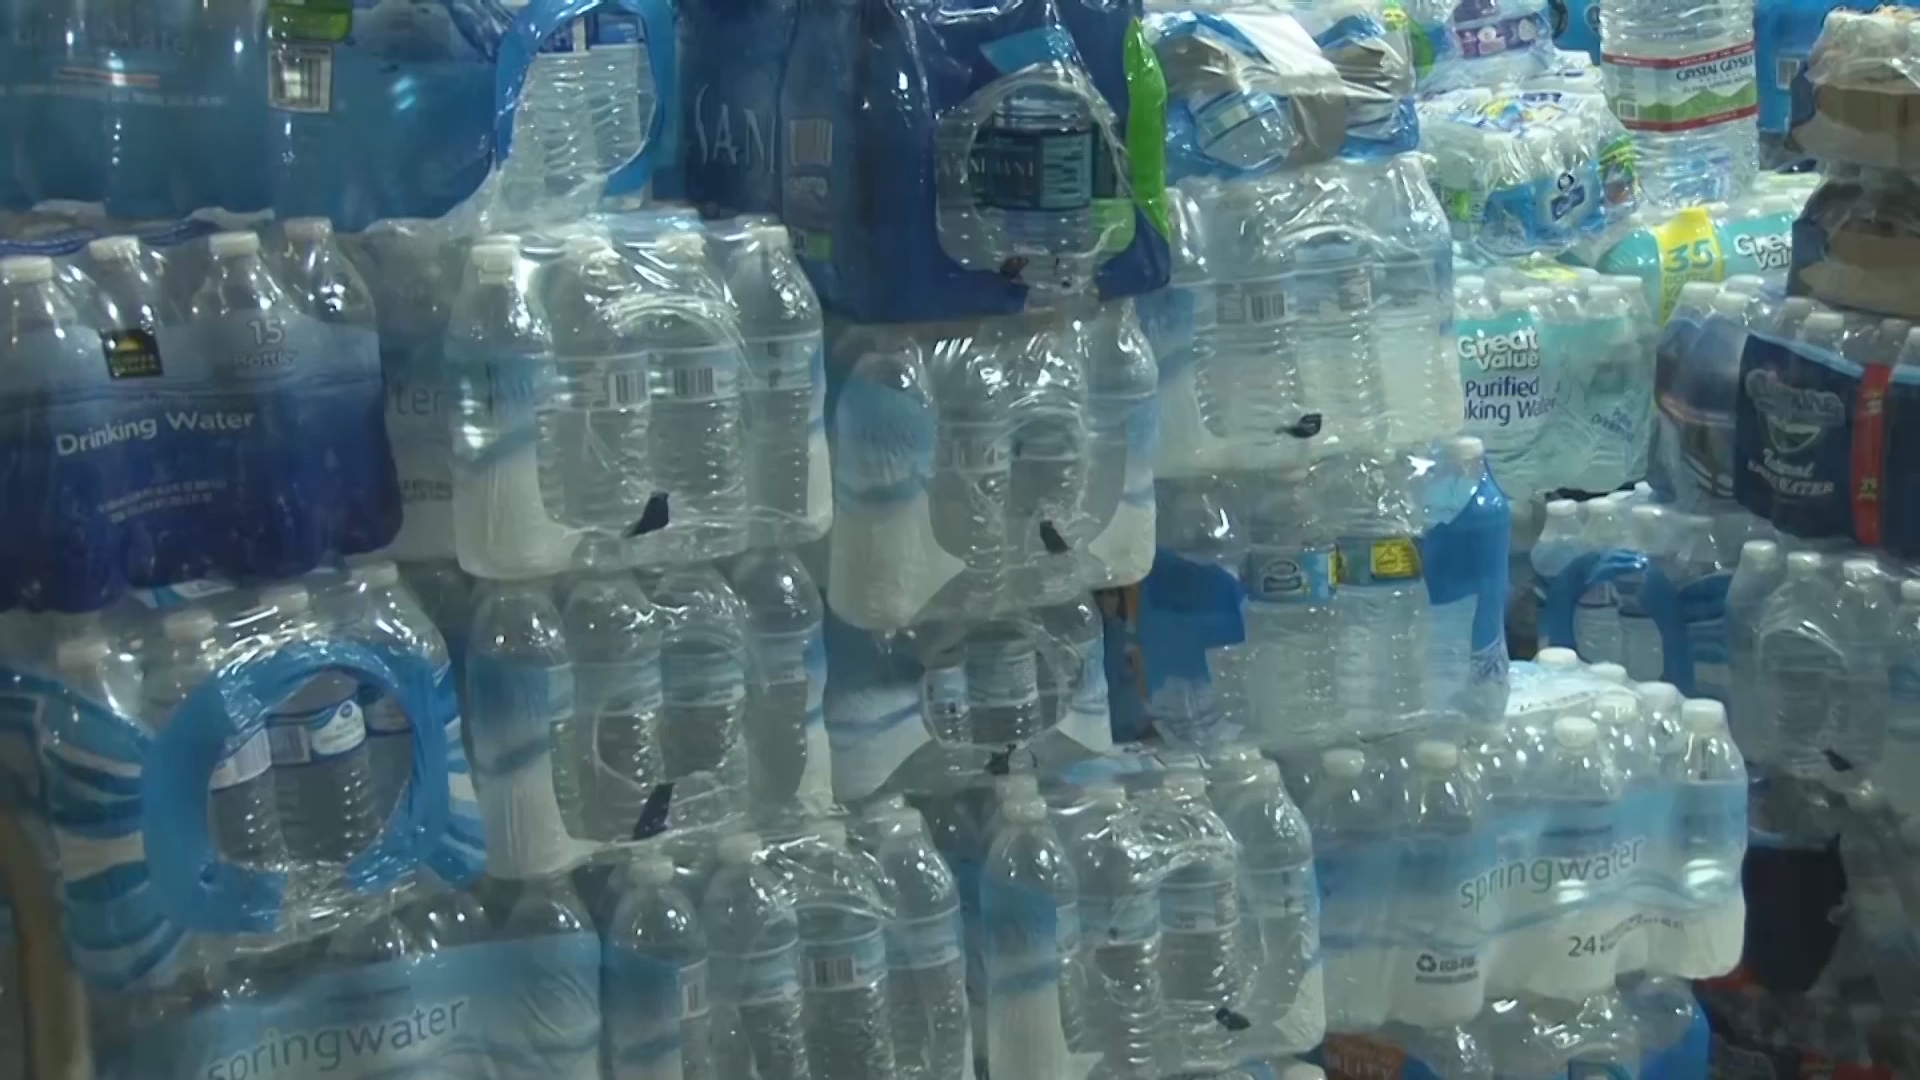 Donated bottled water